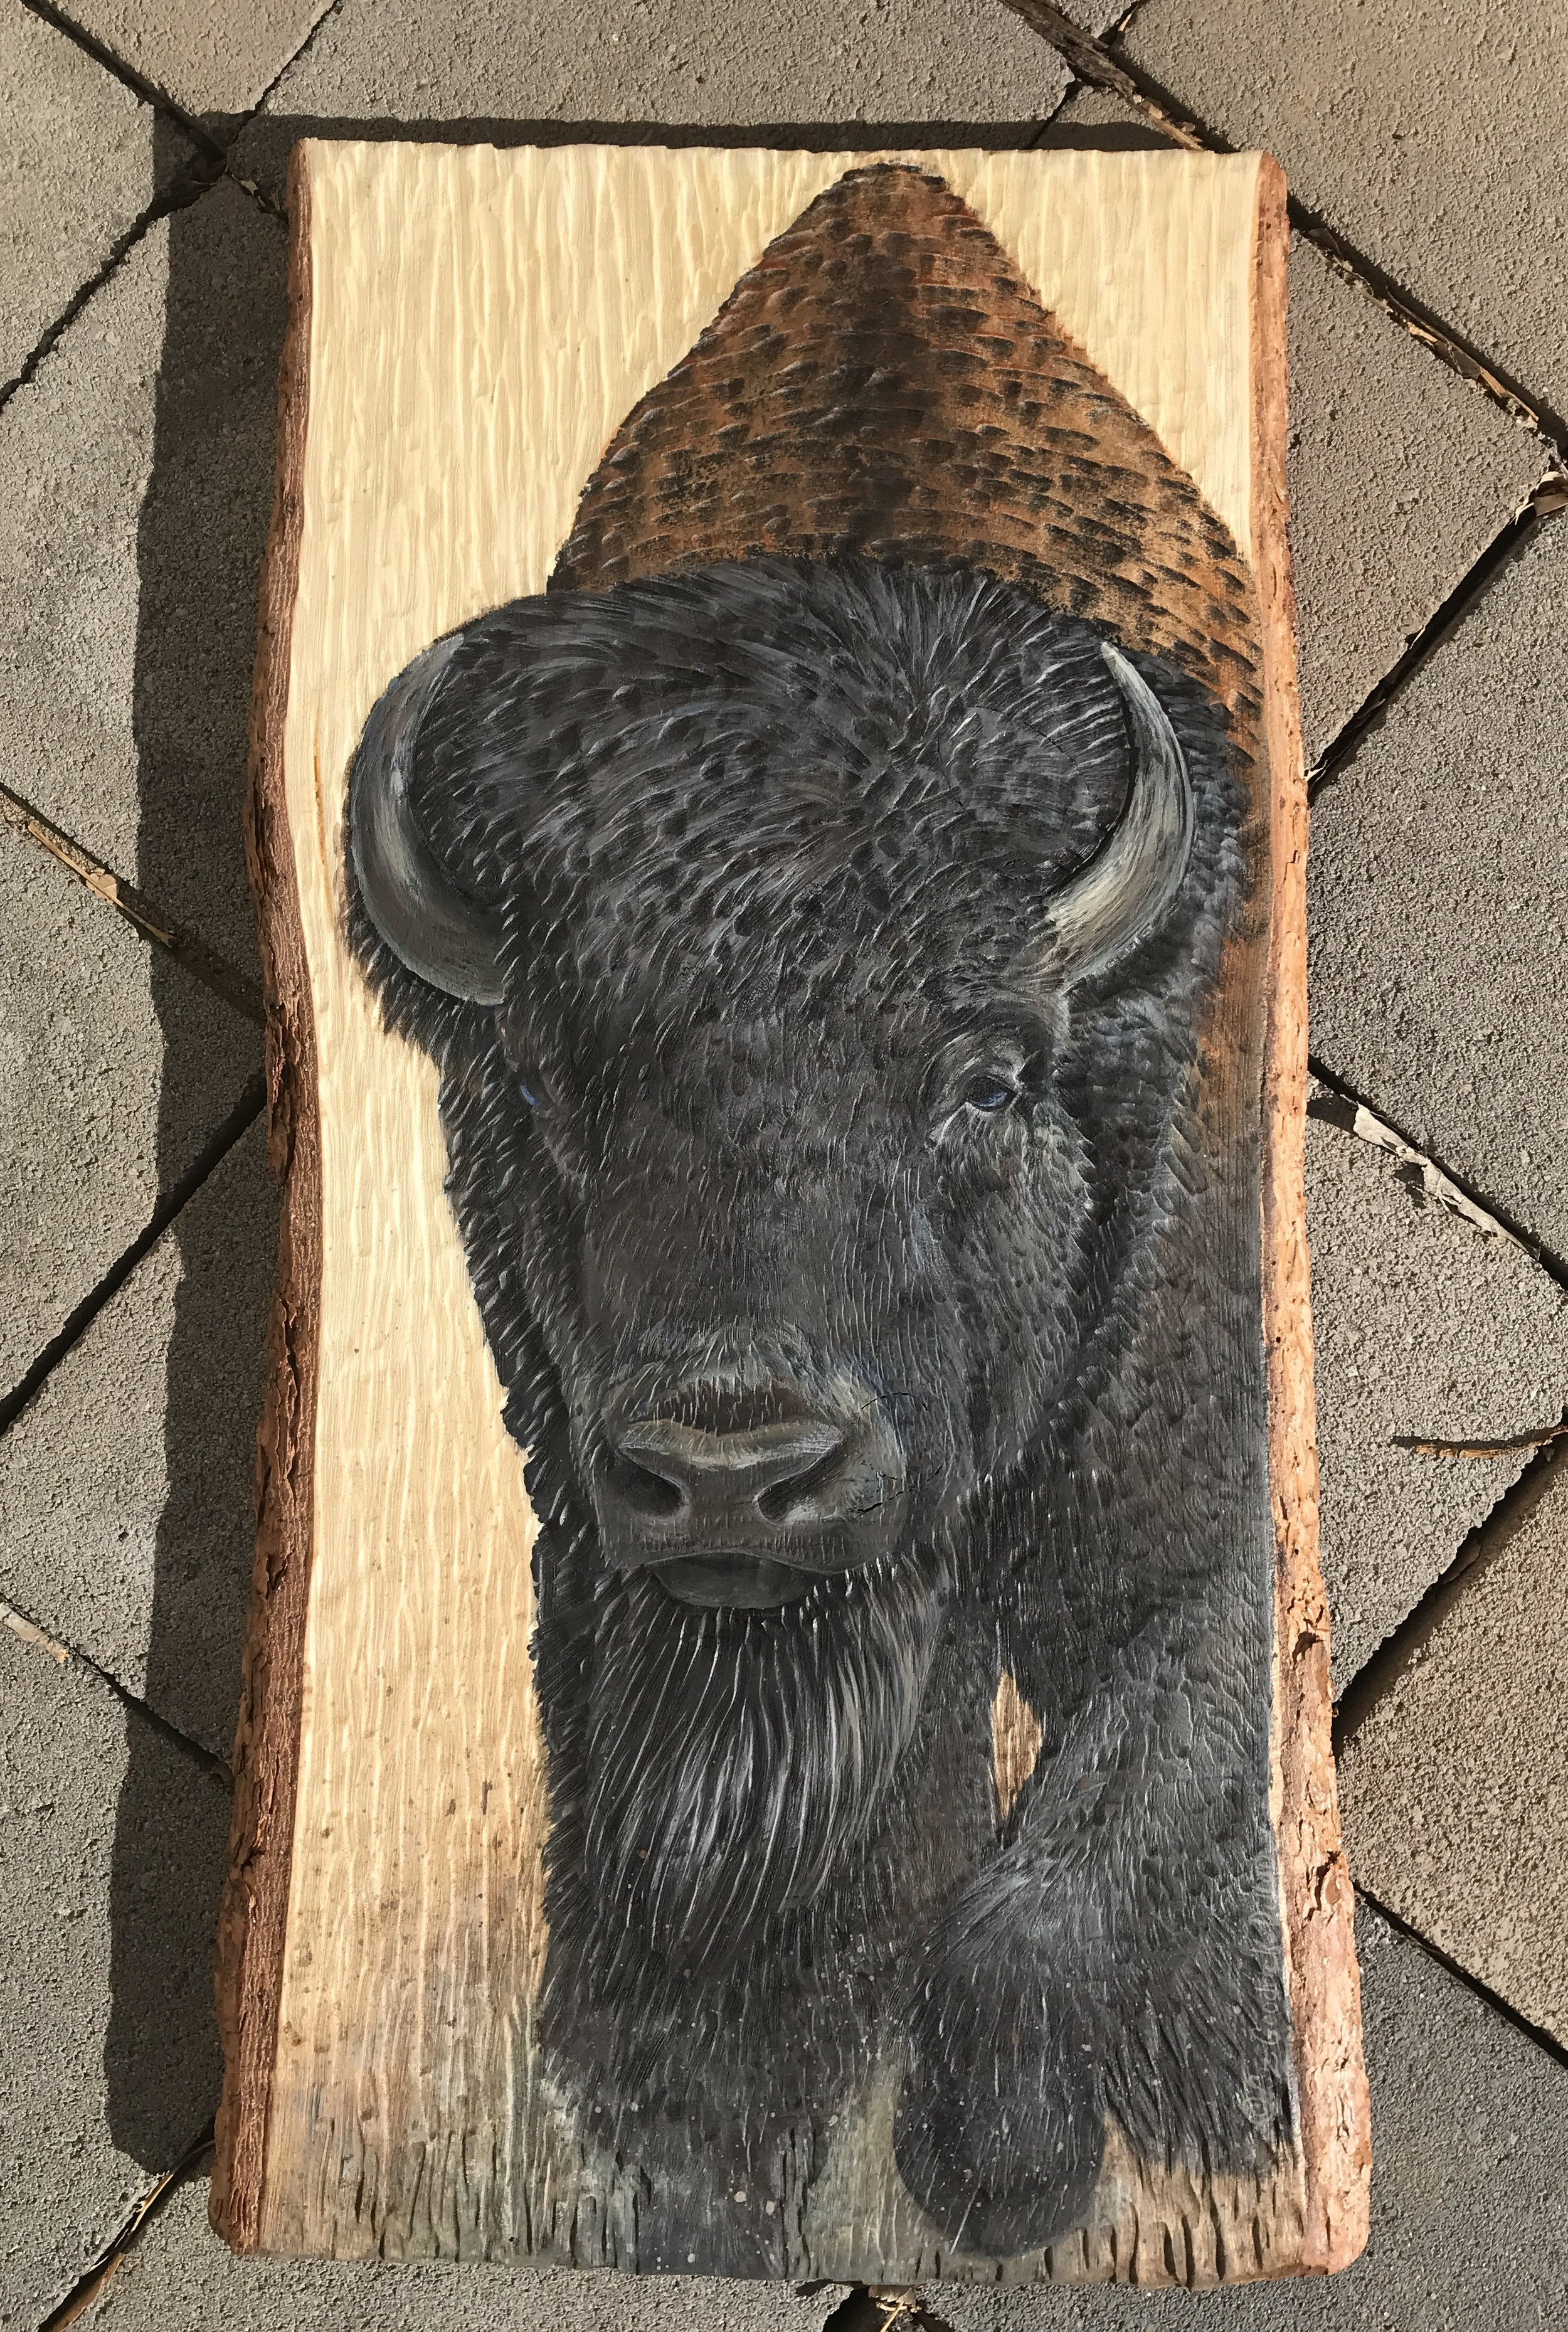 Buffalo Bull on wood - by ©Liz Goodrick-Dillon